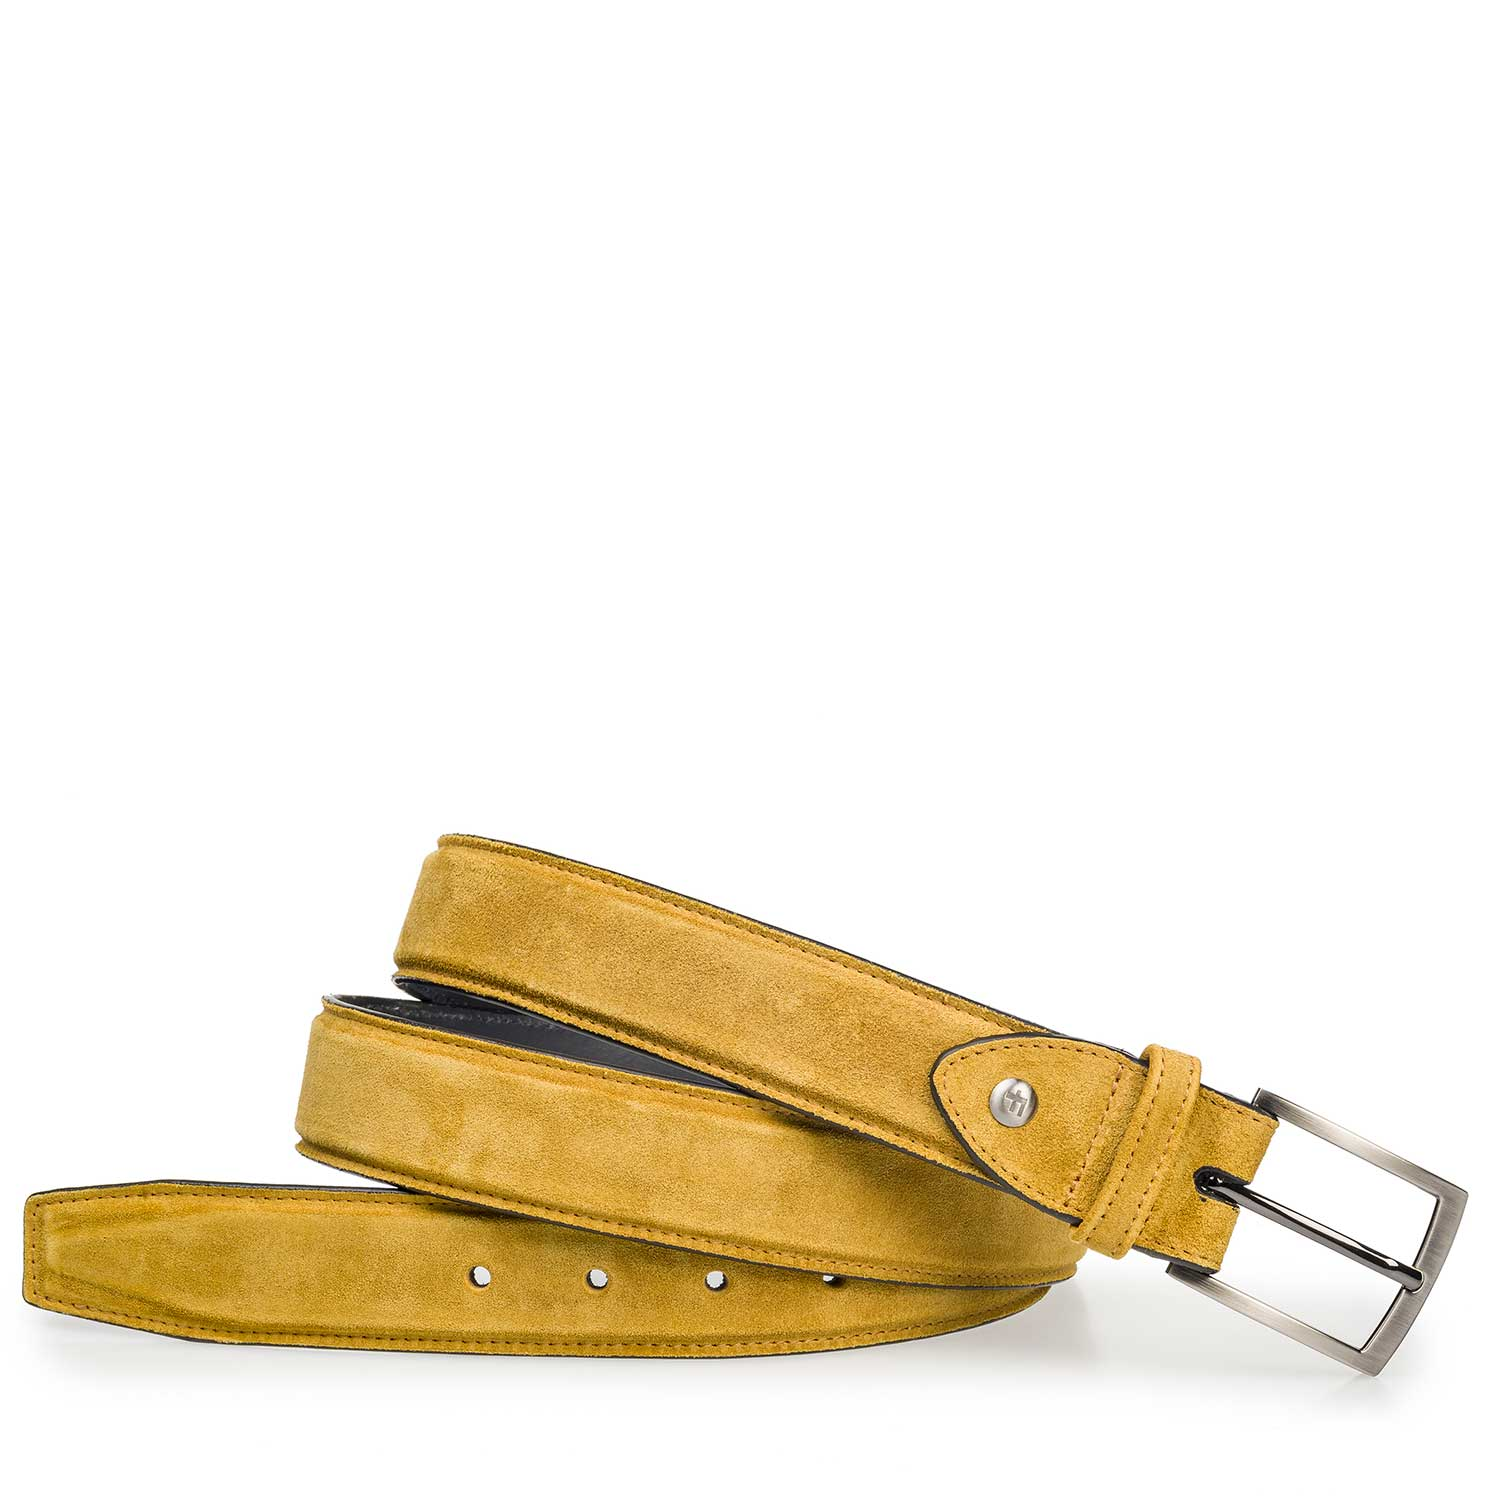 75200/40 - Lightly buffed, yellow suede leather belt